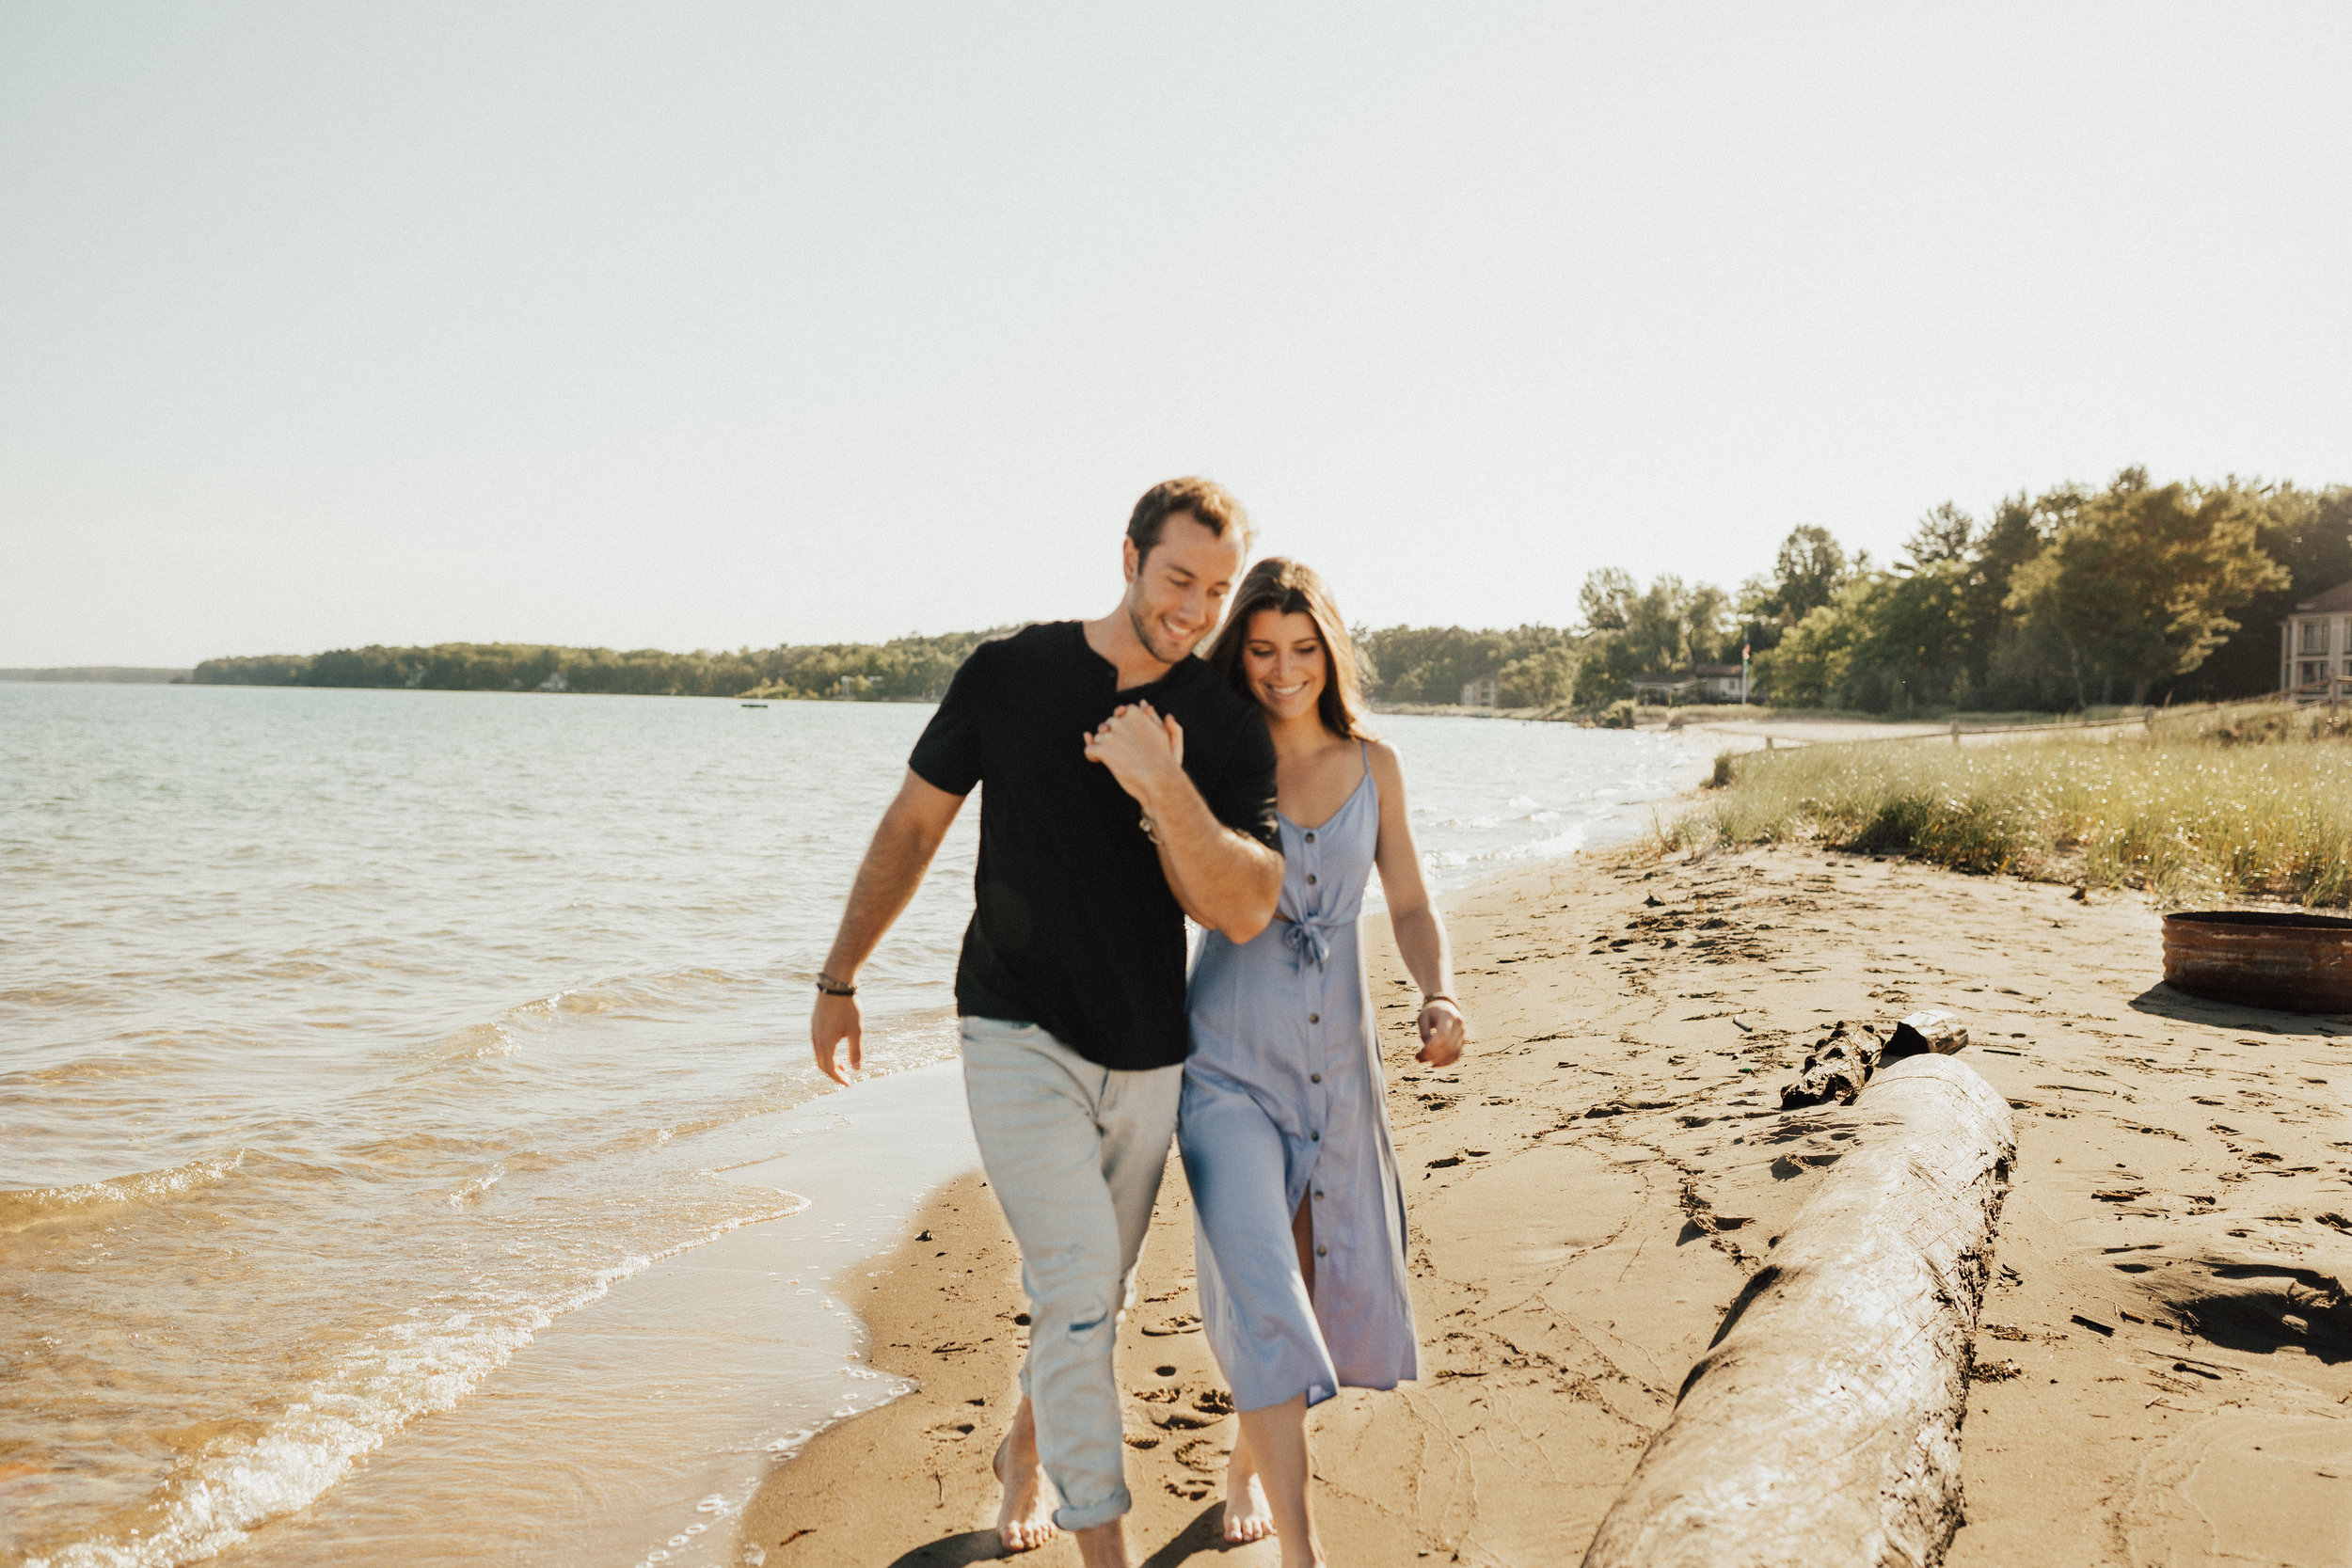 Lake_Michigan_Couples_Session-9.jpg